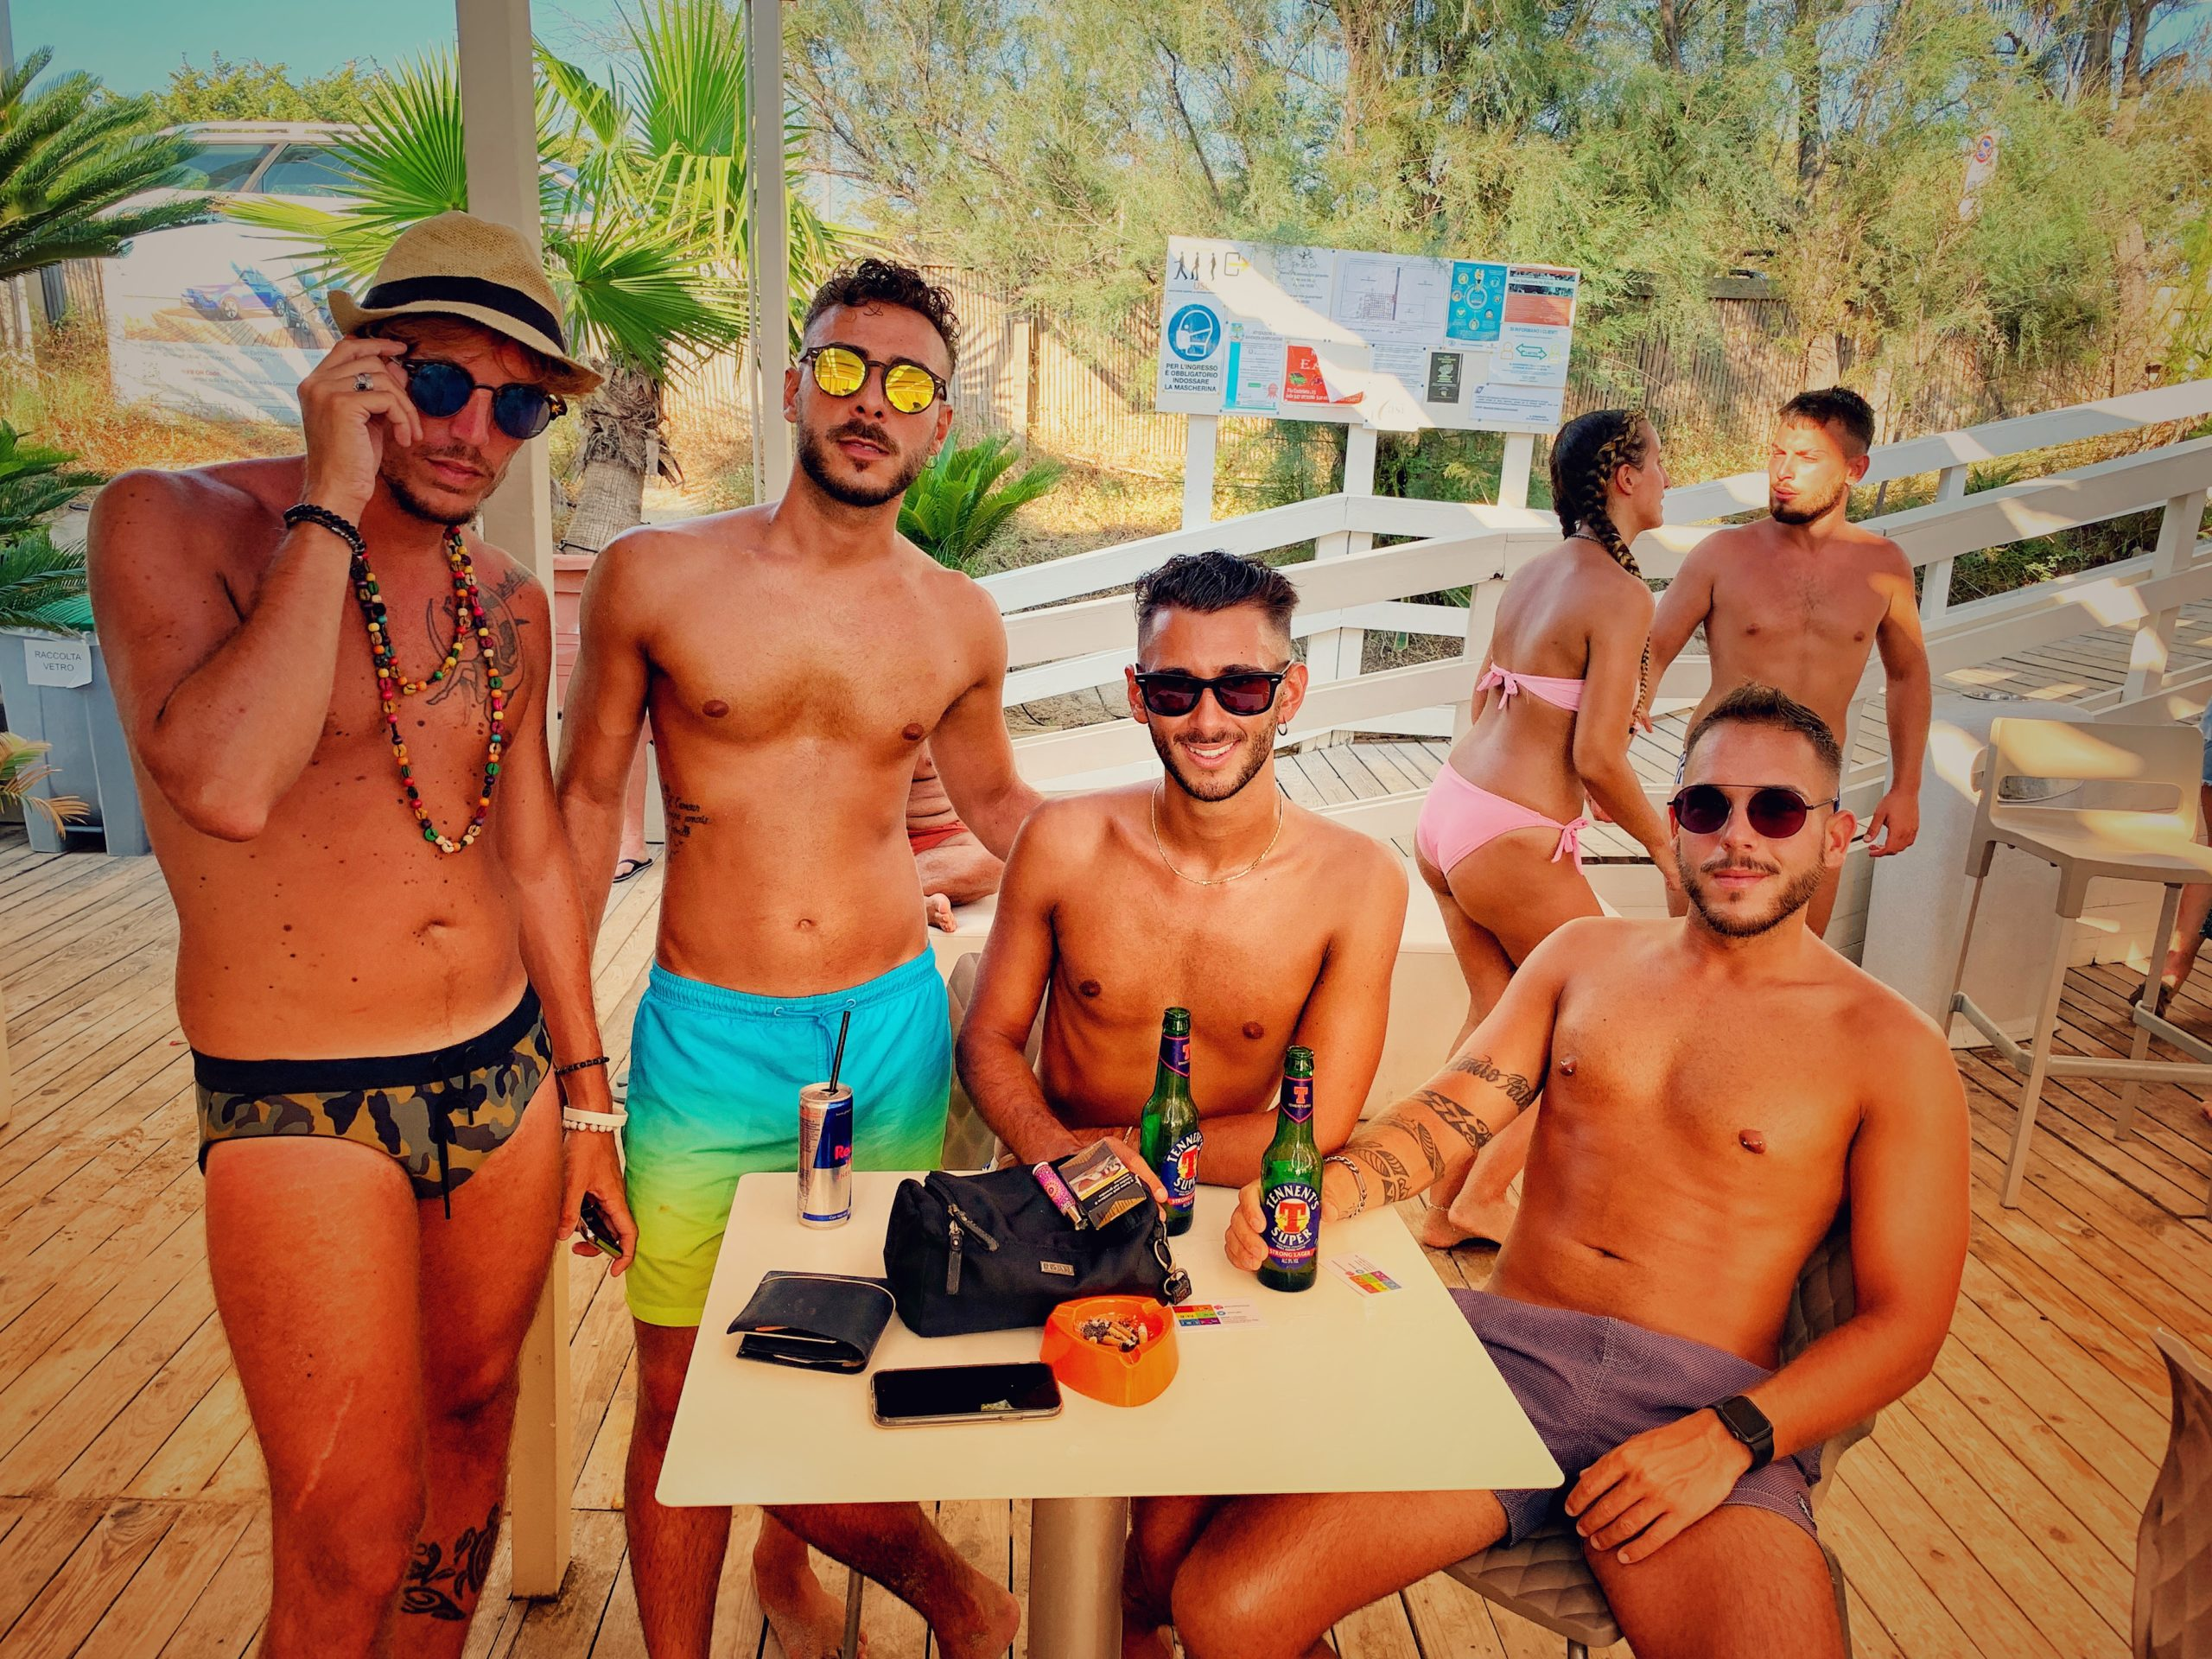 Puglia has many gay and gay friendly beaches. Por do Sol at Baia Verde, Gallipoli is a favourite of the Big Gay Podcast from Puglia, the definitive guide to gay Puglia.